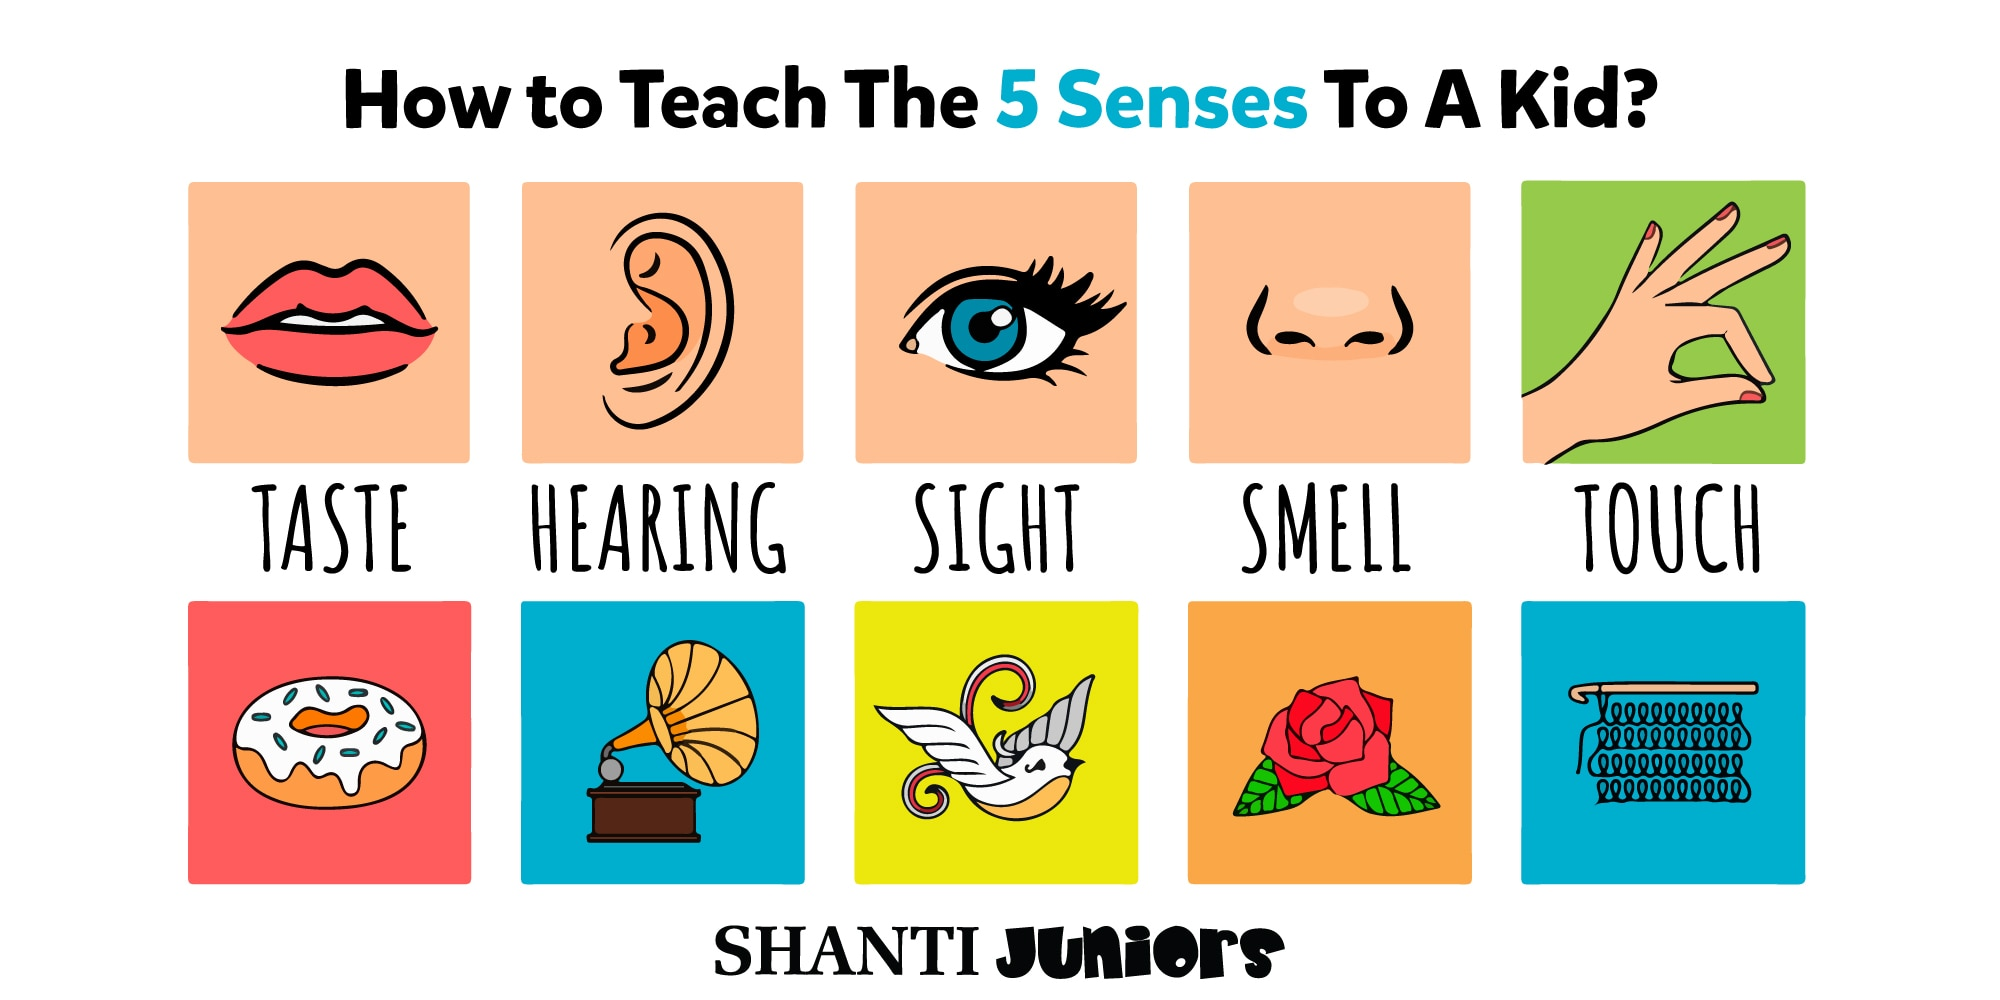 Teaching The Five Senses To Preschoolers